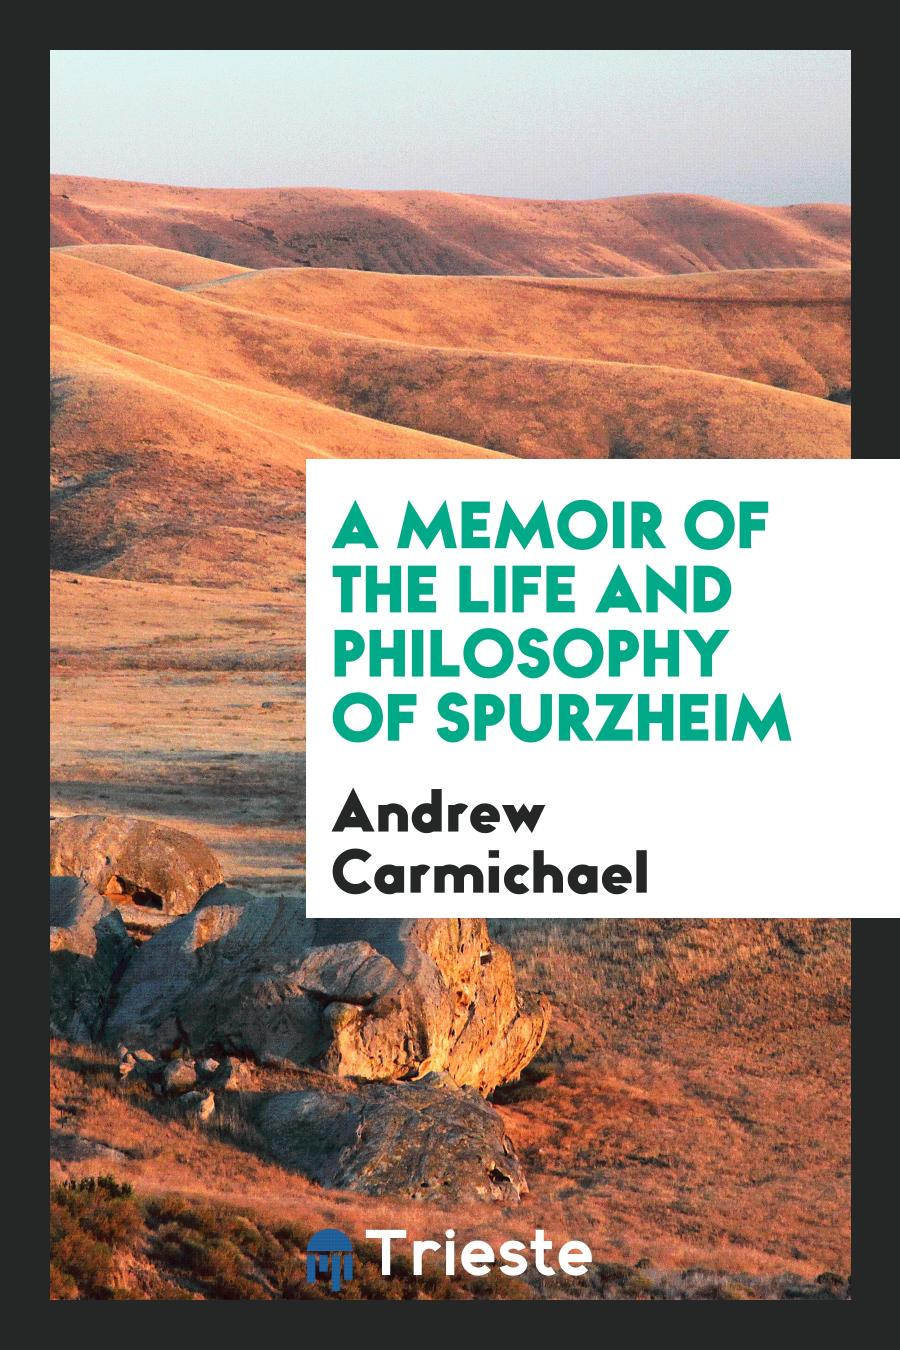 A Memoir of the Life and Philosophy of Spurzheim